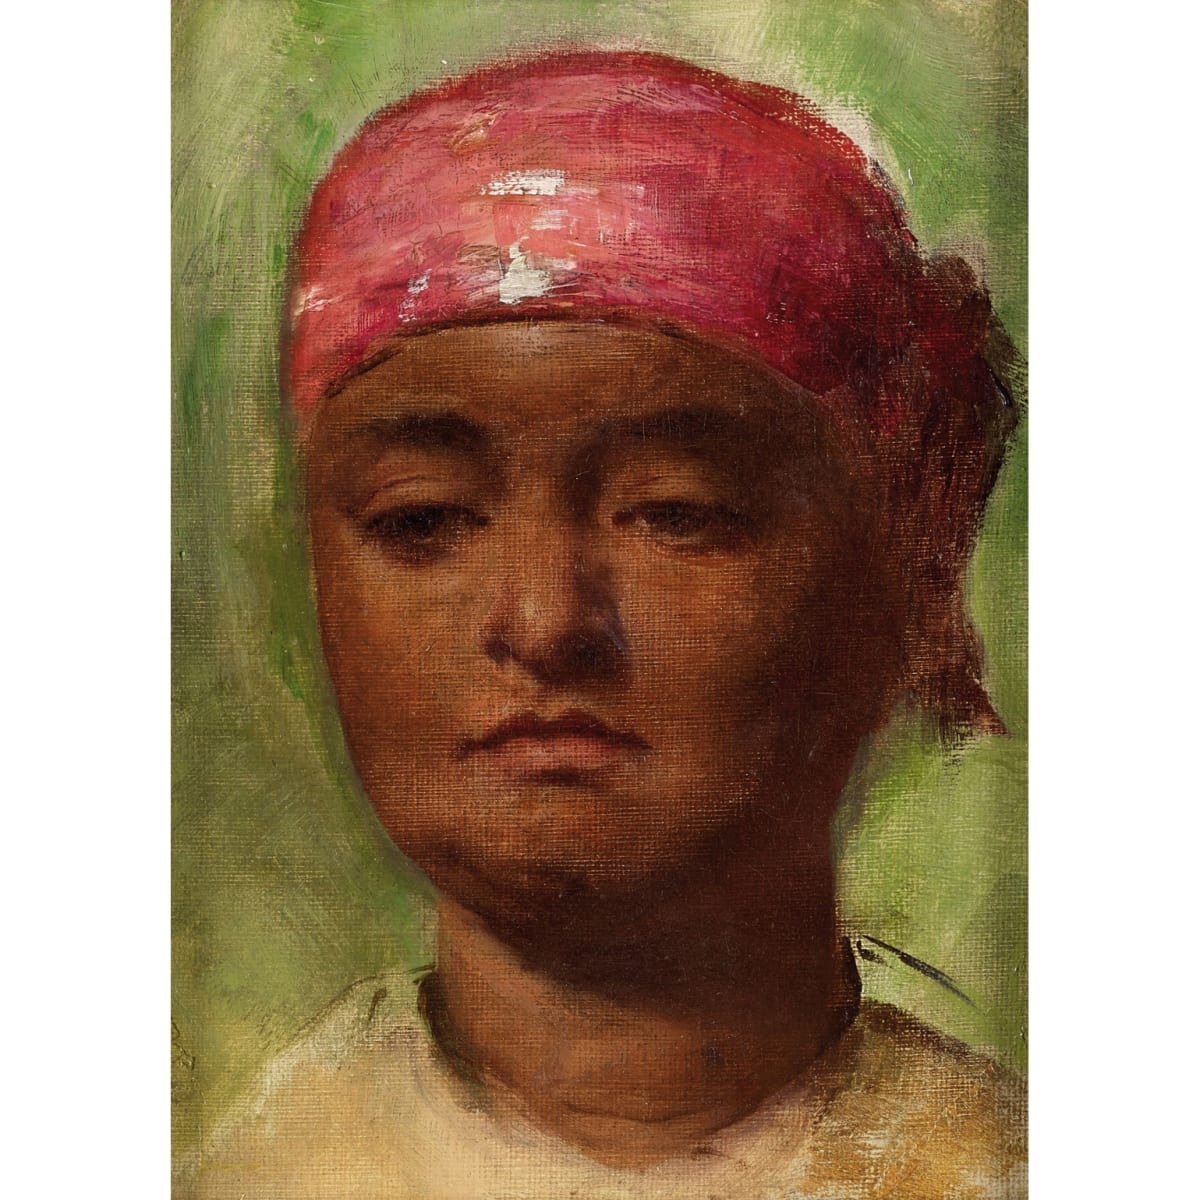 Robert Gavin Head of a Creole Woman oil on canvas board 7 x 5 inches